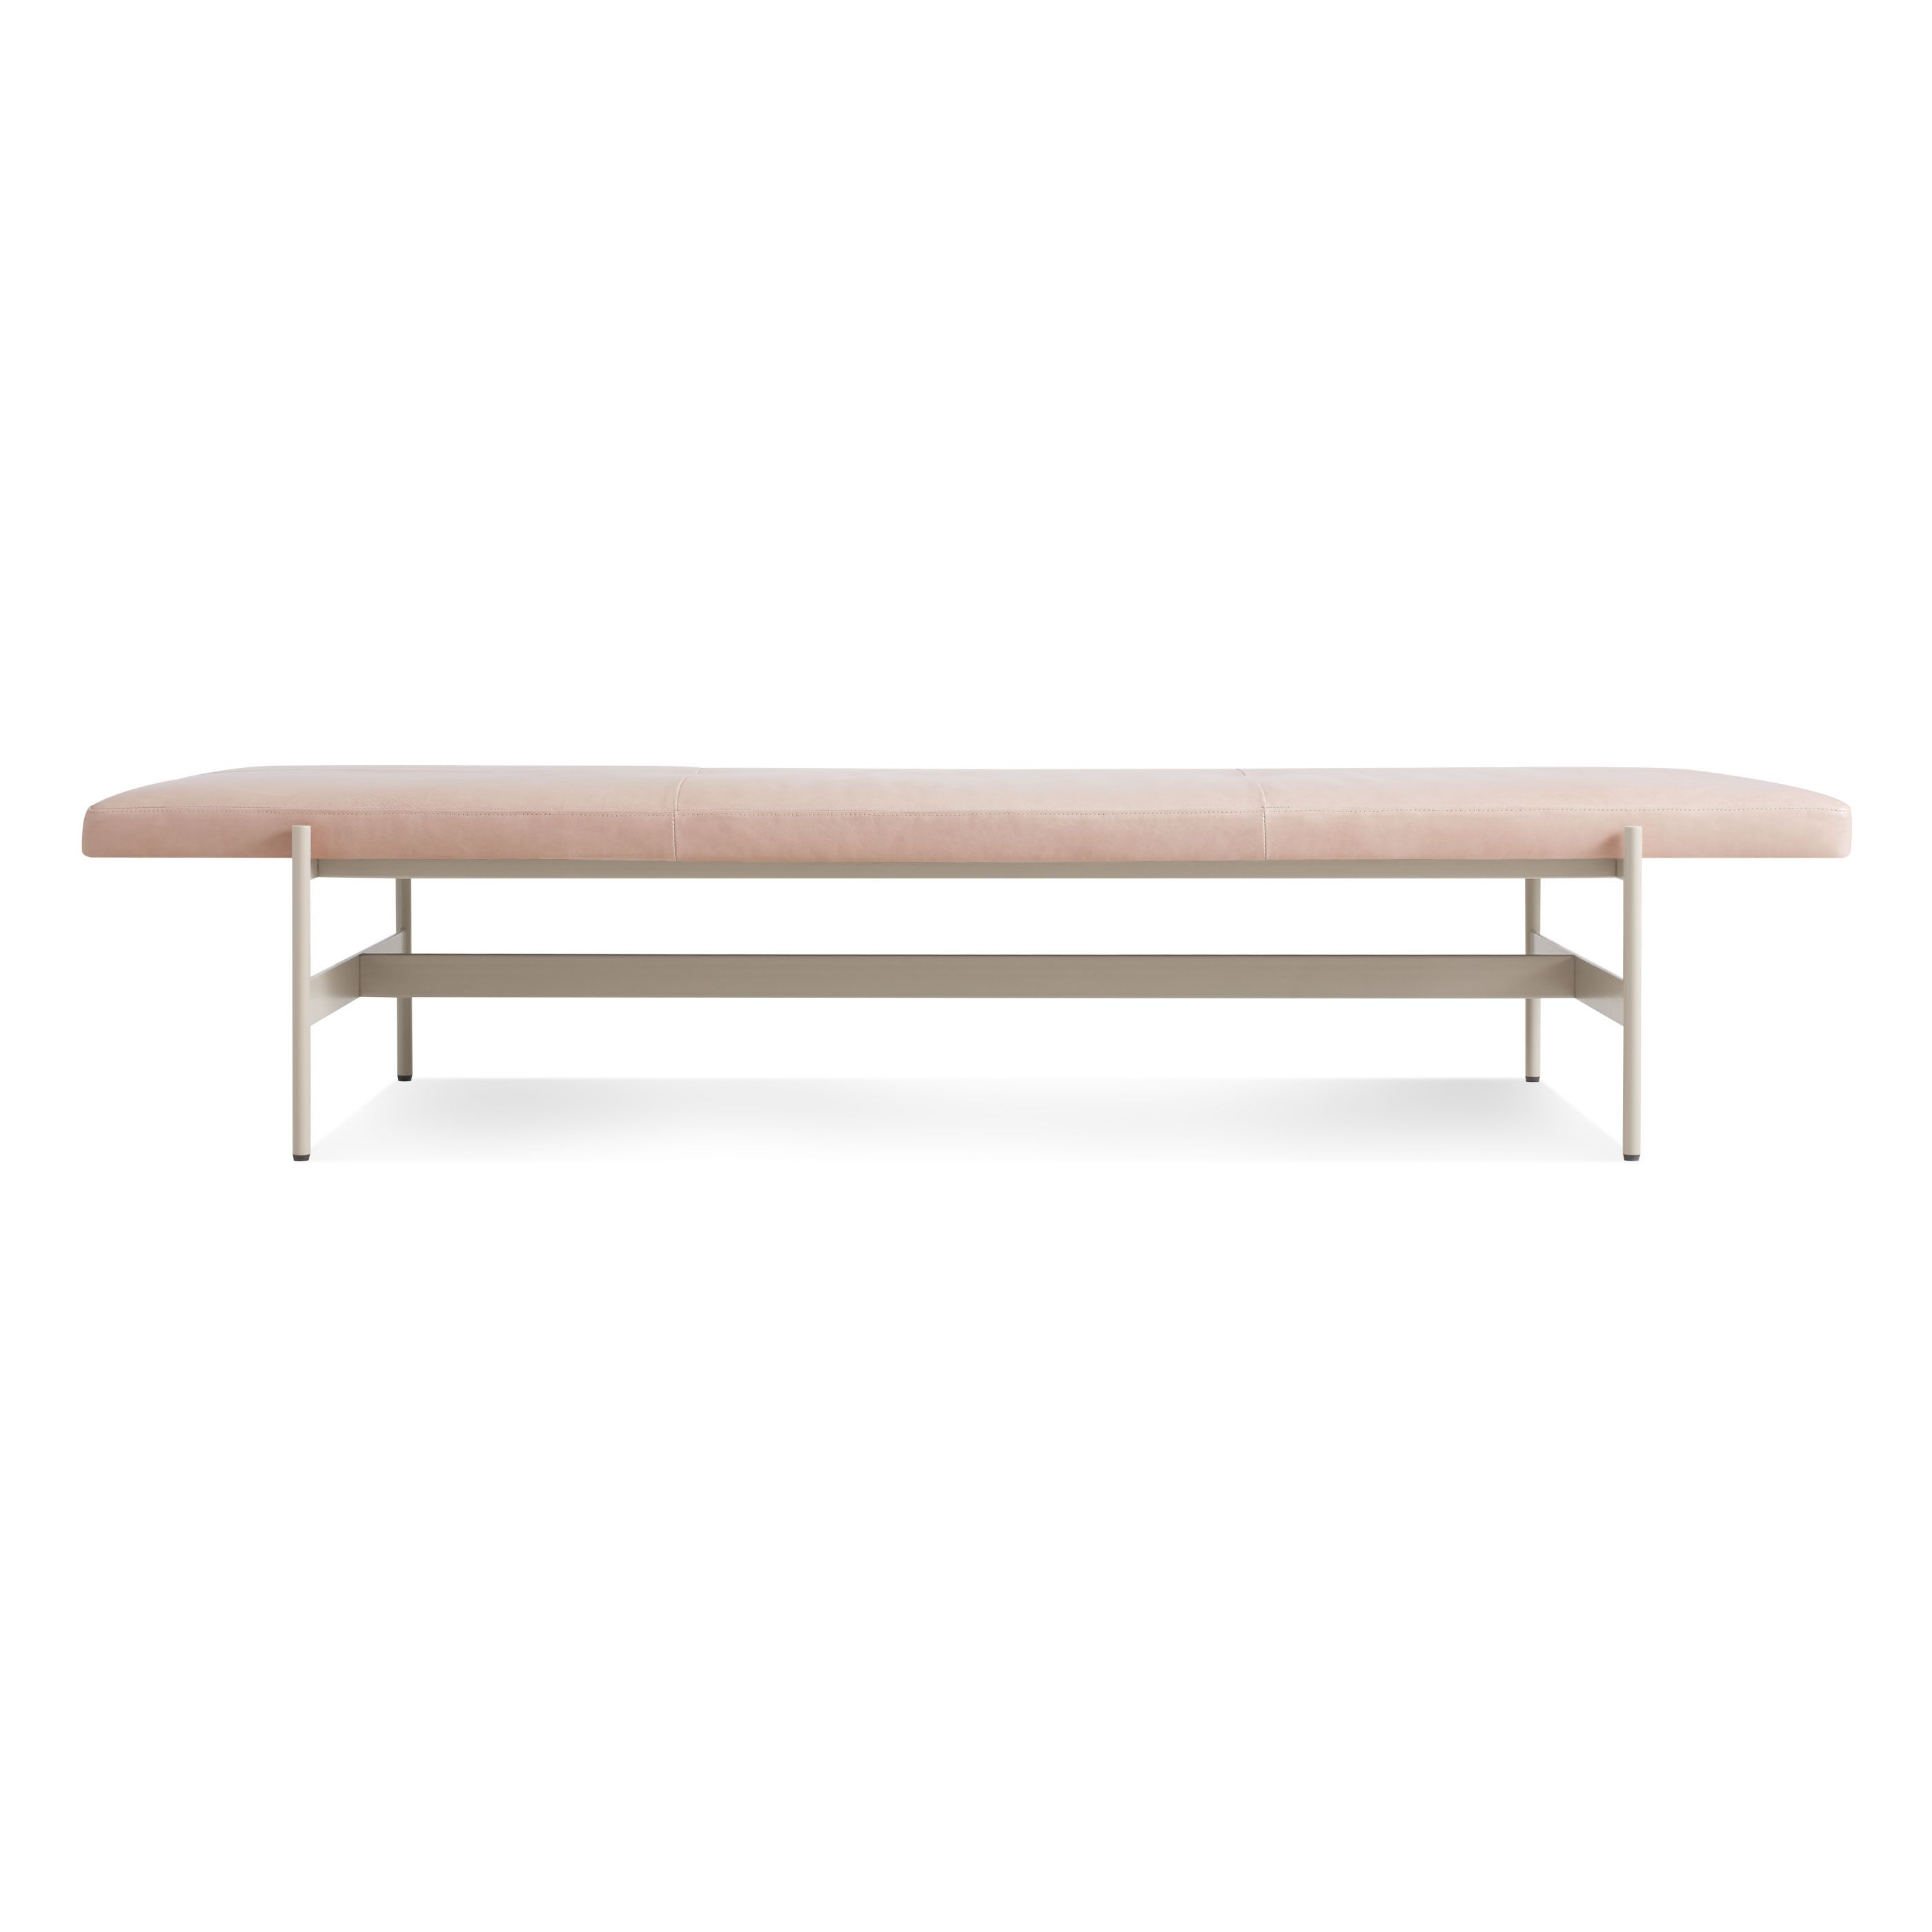 Daybench Jumbo Modern Leather Bench Dining Benches Modern Bench